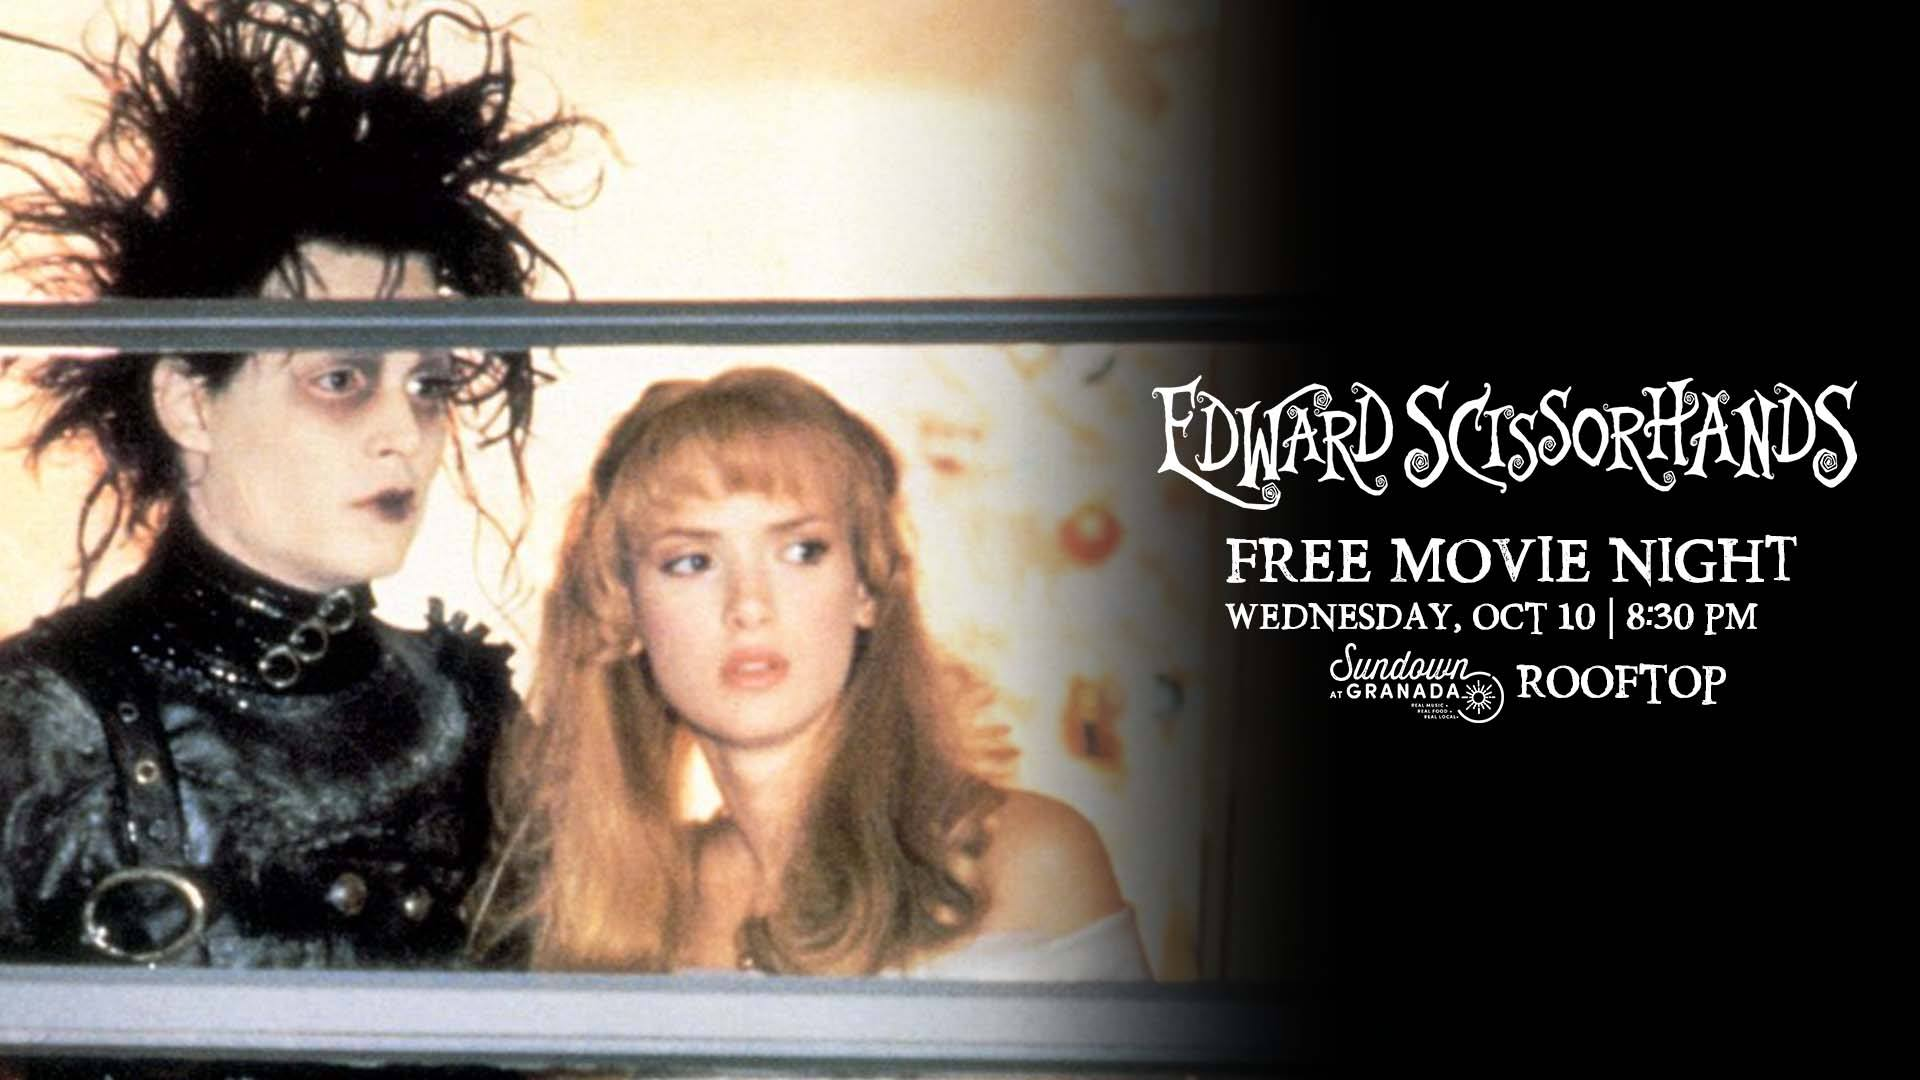 Our Rooftop Movie Night series continues with a FREE screening of the immortal classic Edward Scissorhands! Come join us for themed beverages on our rooftop patio!  21+